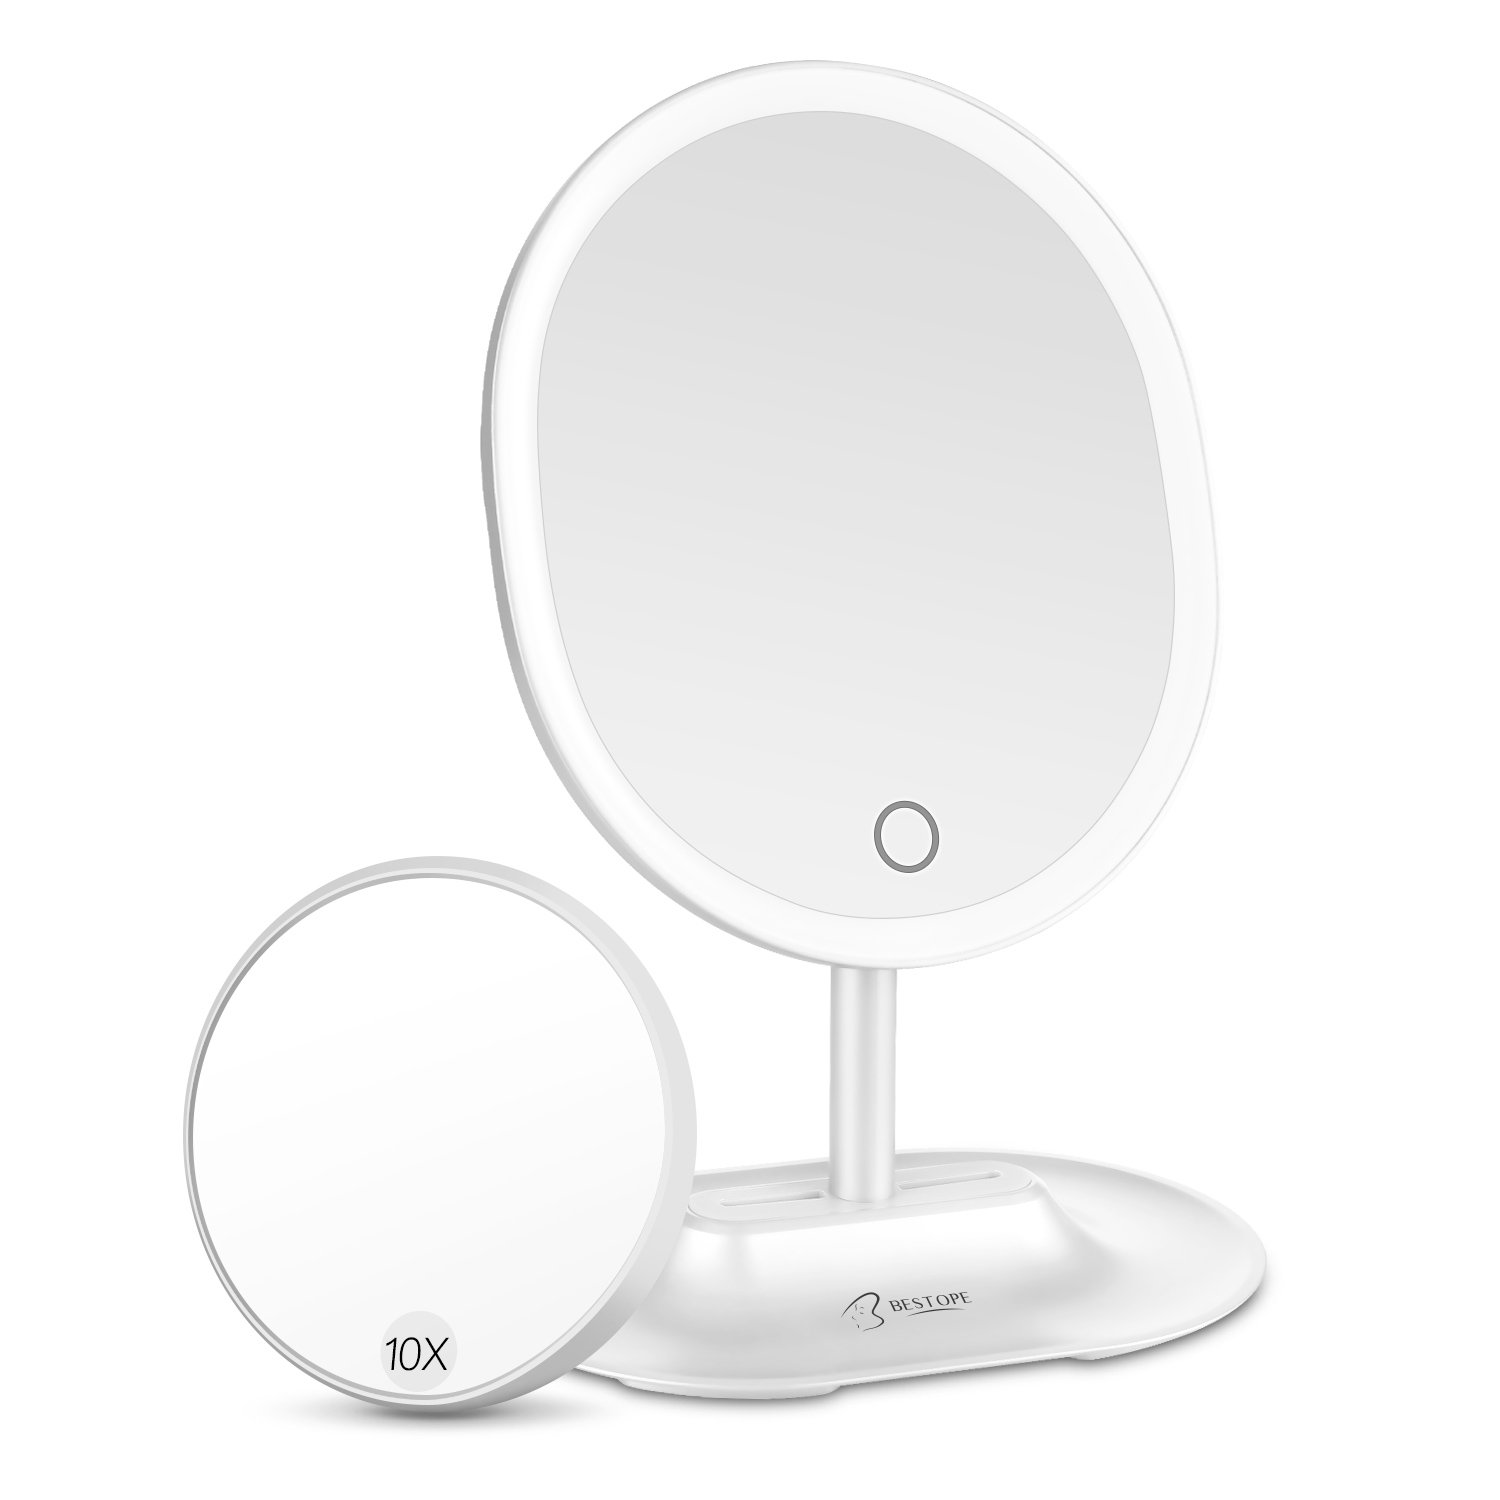 BESTOPE LED Makeup Mirror with 1X/10X Magnification, Natural Lighted Vanity Mirror Touch Screen, USB & Battery Power Supply, Oval Shaped Dimmable Countertop Cosmetic Makeup Mirror by BESTOPE (Image #1)